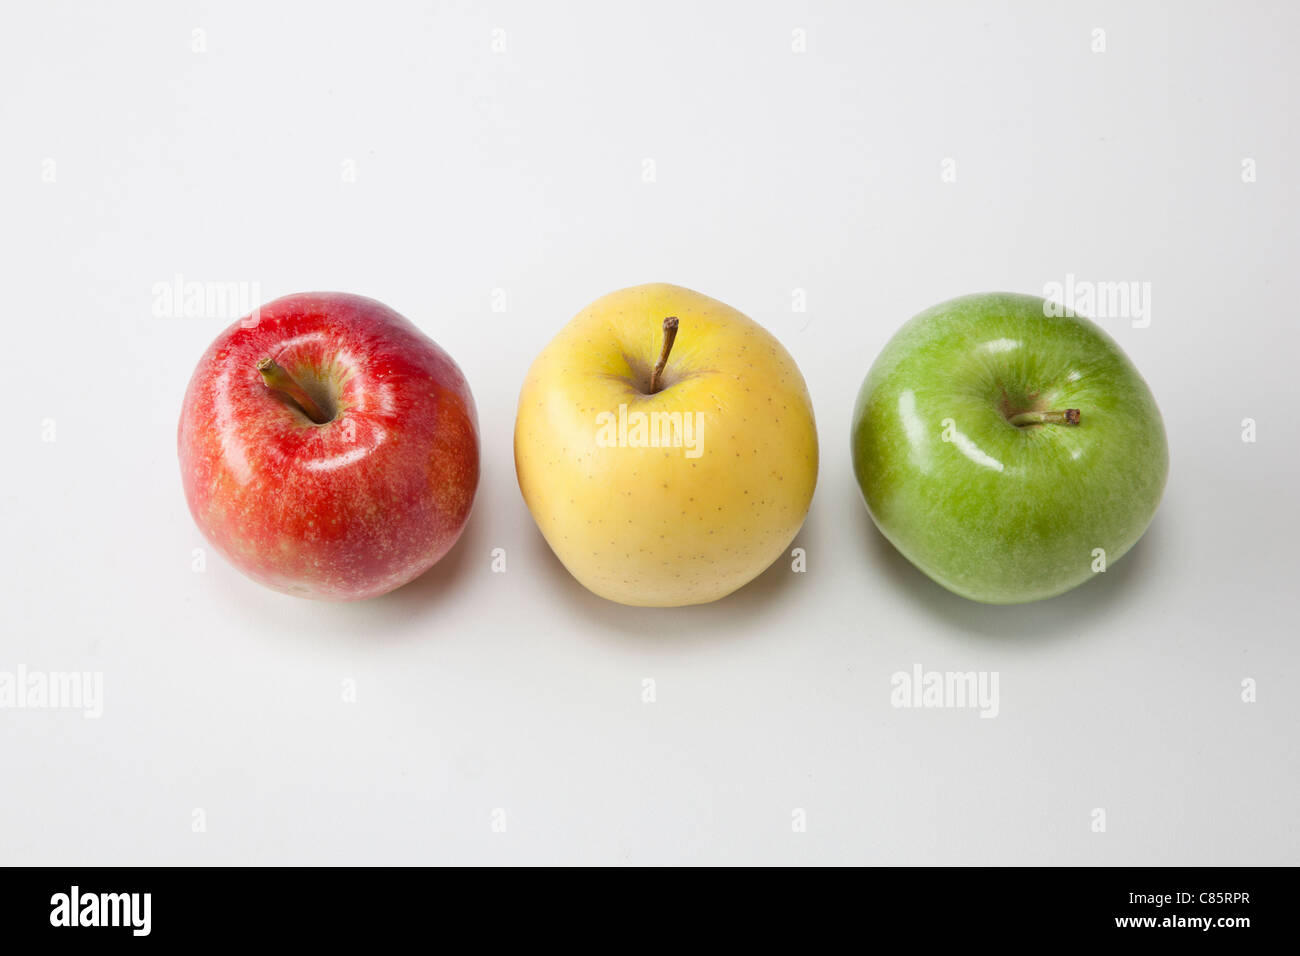 three different types of apples on white - Stock Image